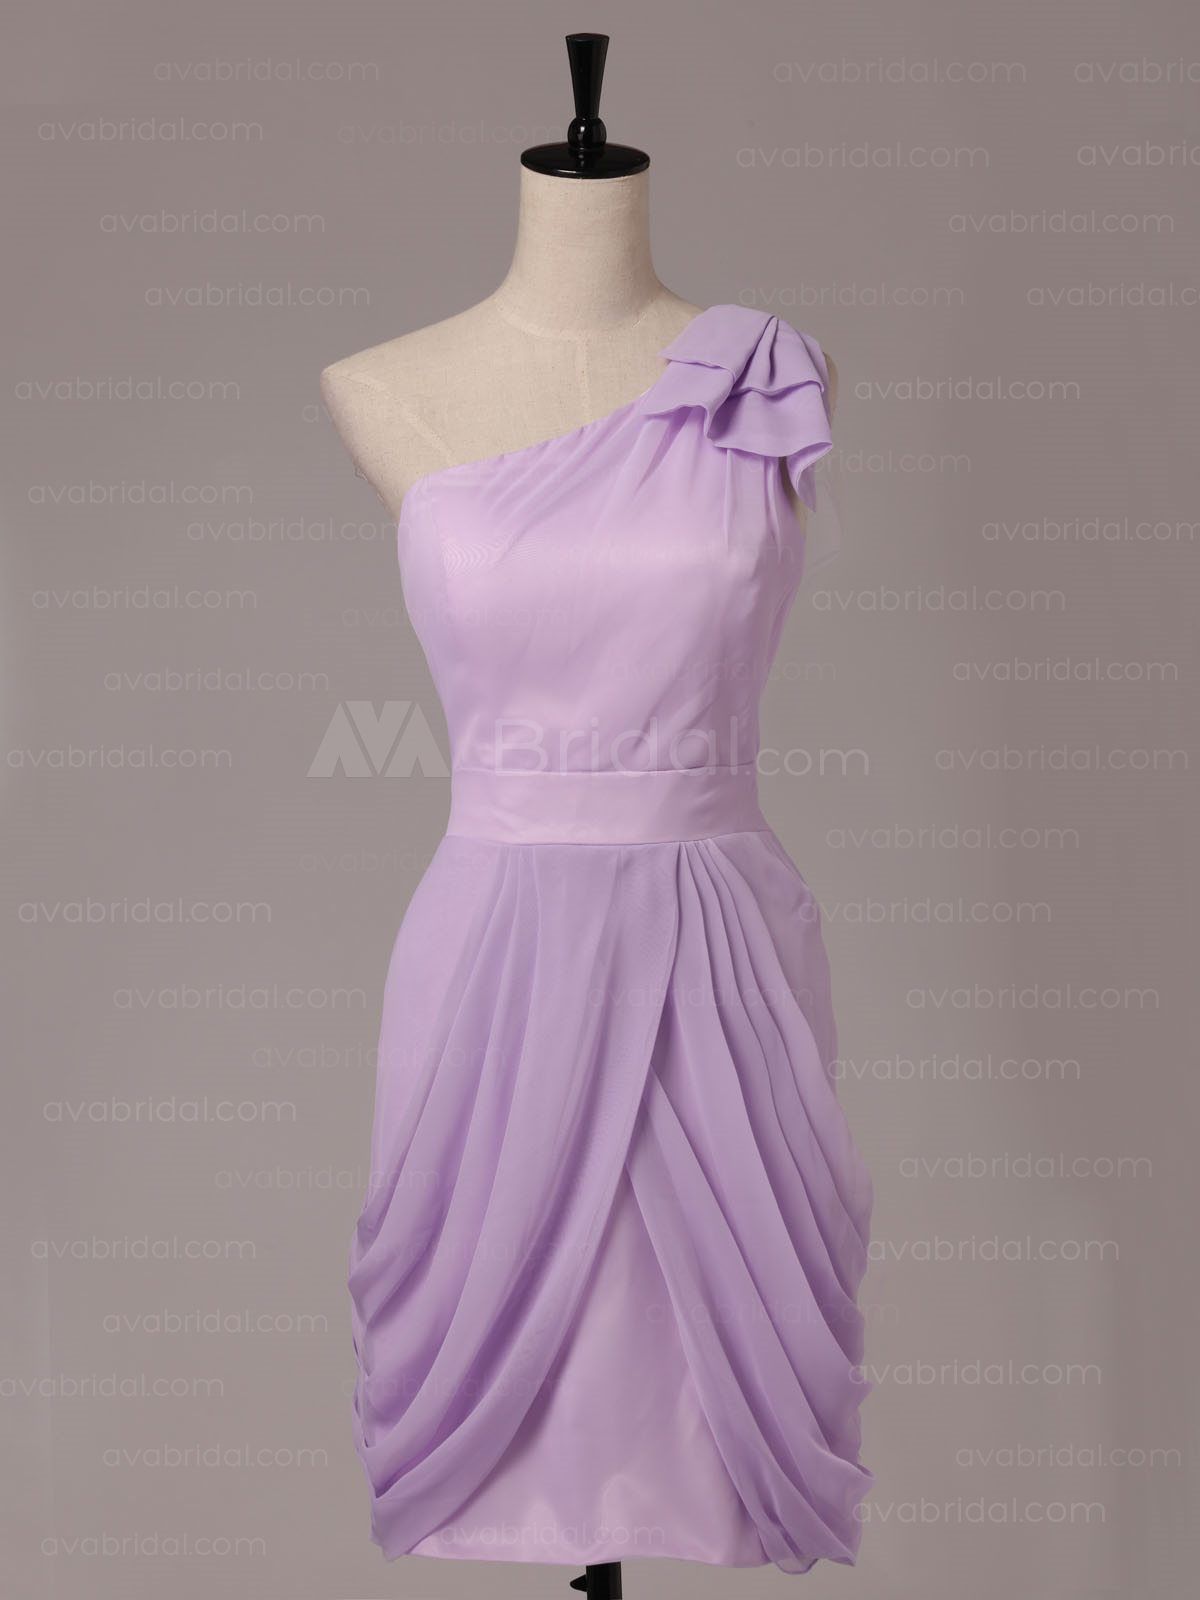 Asymmetrical Neckline Chic Chiffon Bridesmaid Dress B481-front